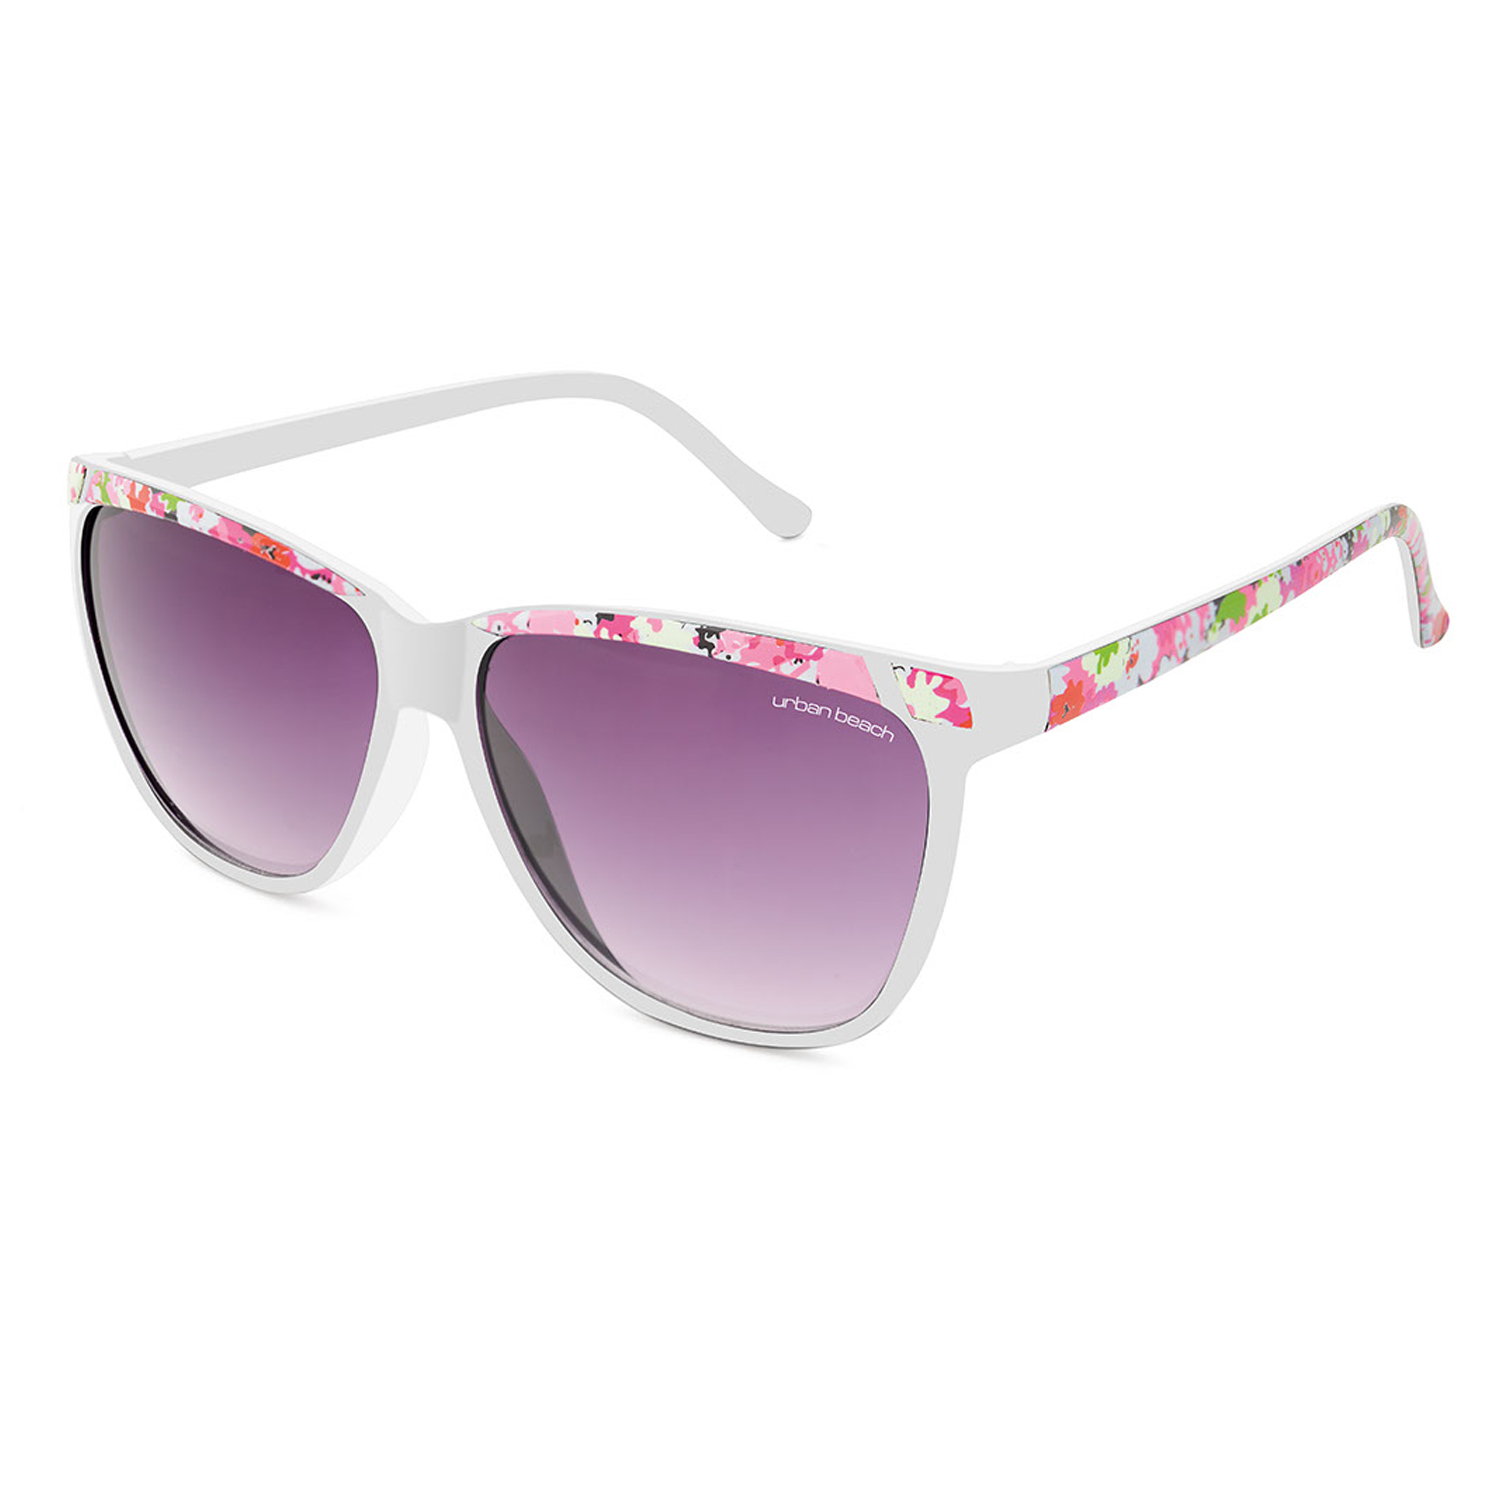 Image of Urban Beach Florish Retro Sunglasses ,white